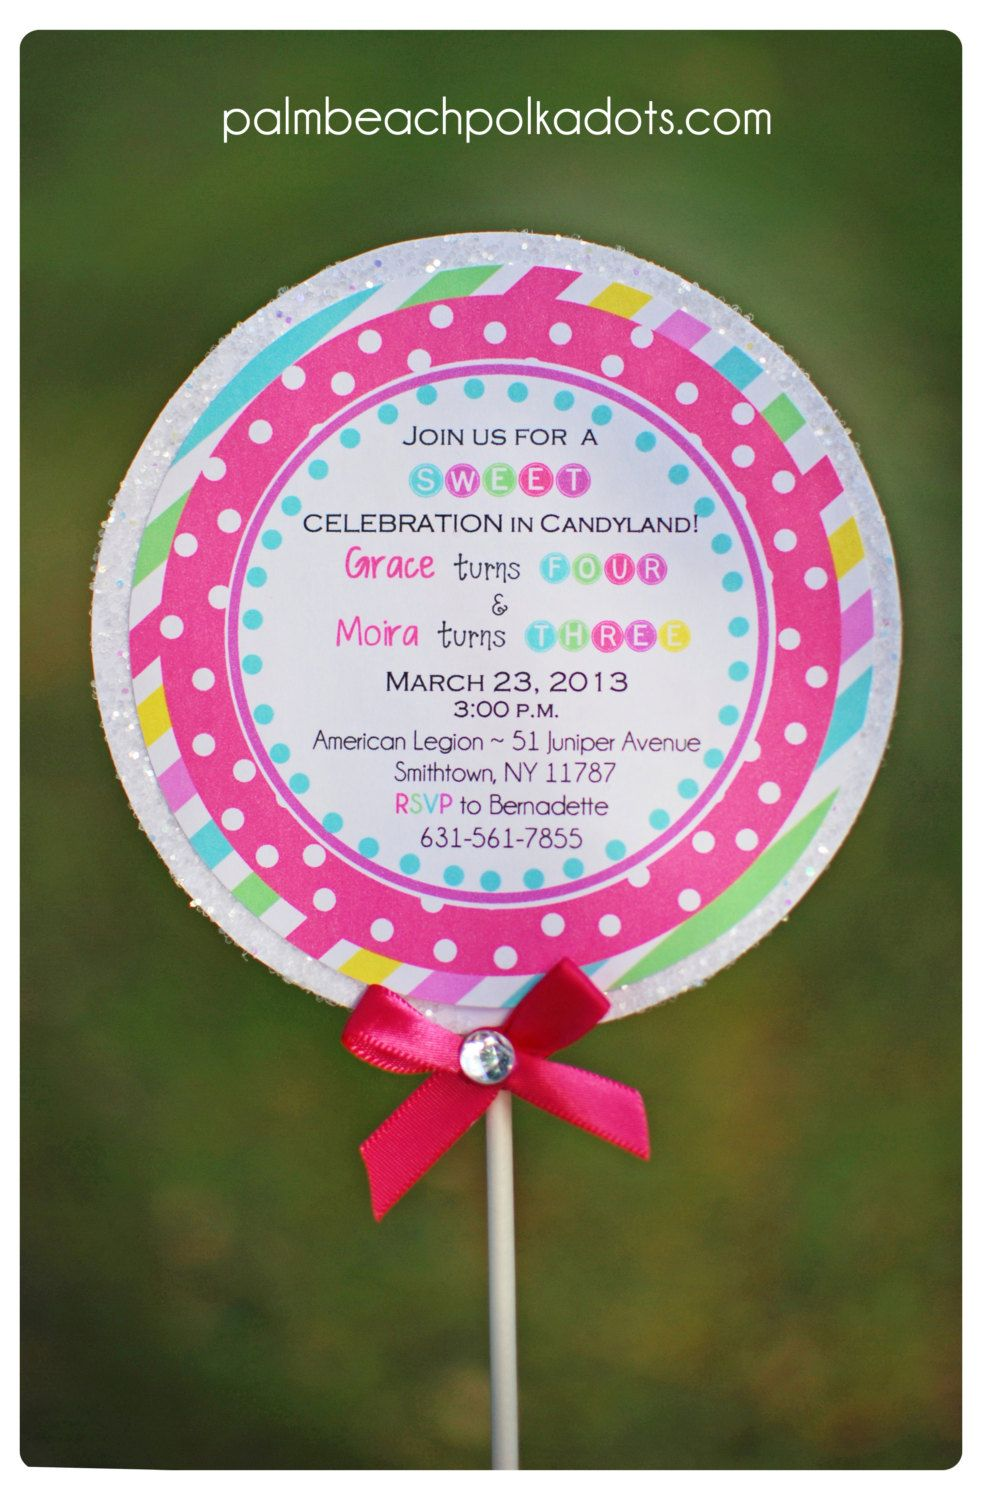 Deluxe Glitter Candyland Lollipop Birthday Invitations By Palm Beach Polkadots Candy Land Birthday Party Lollipop Invitations Candyland Birthday